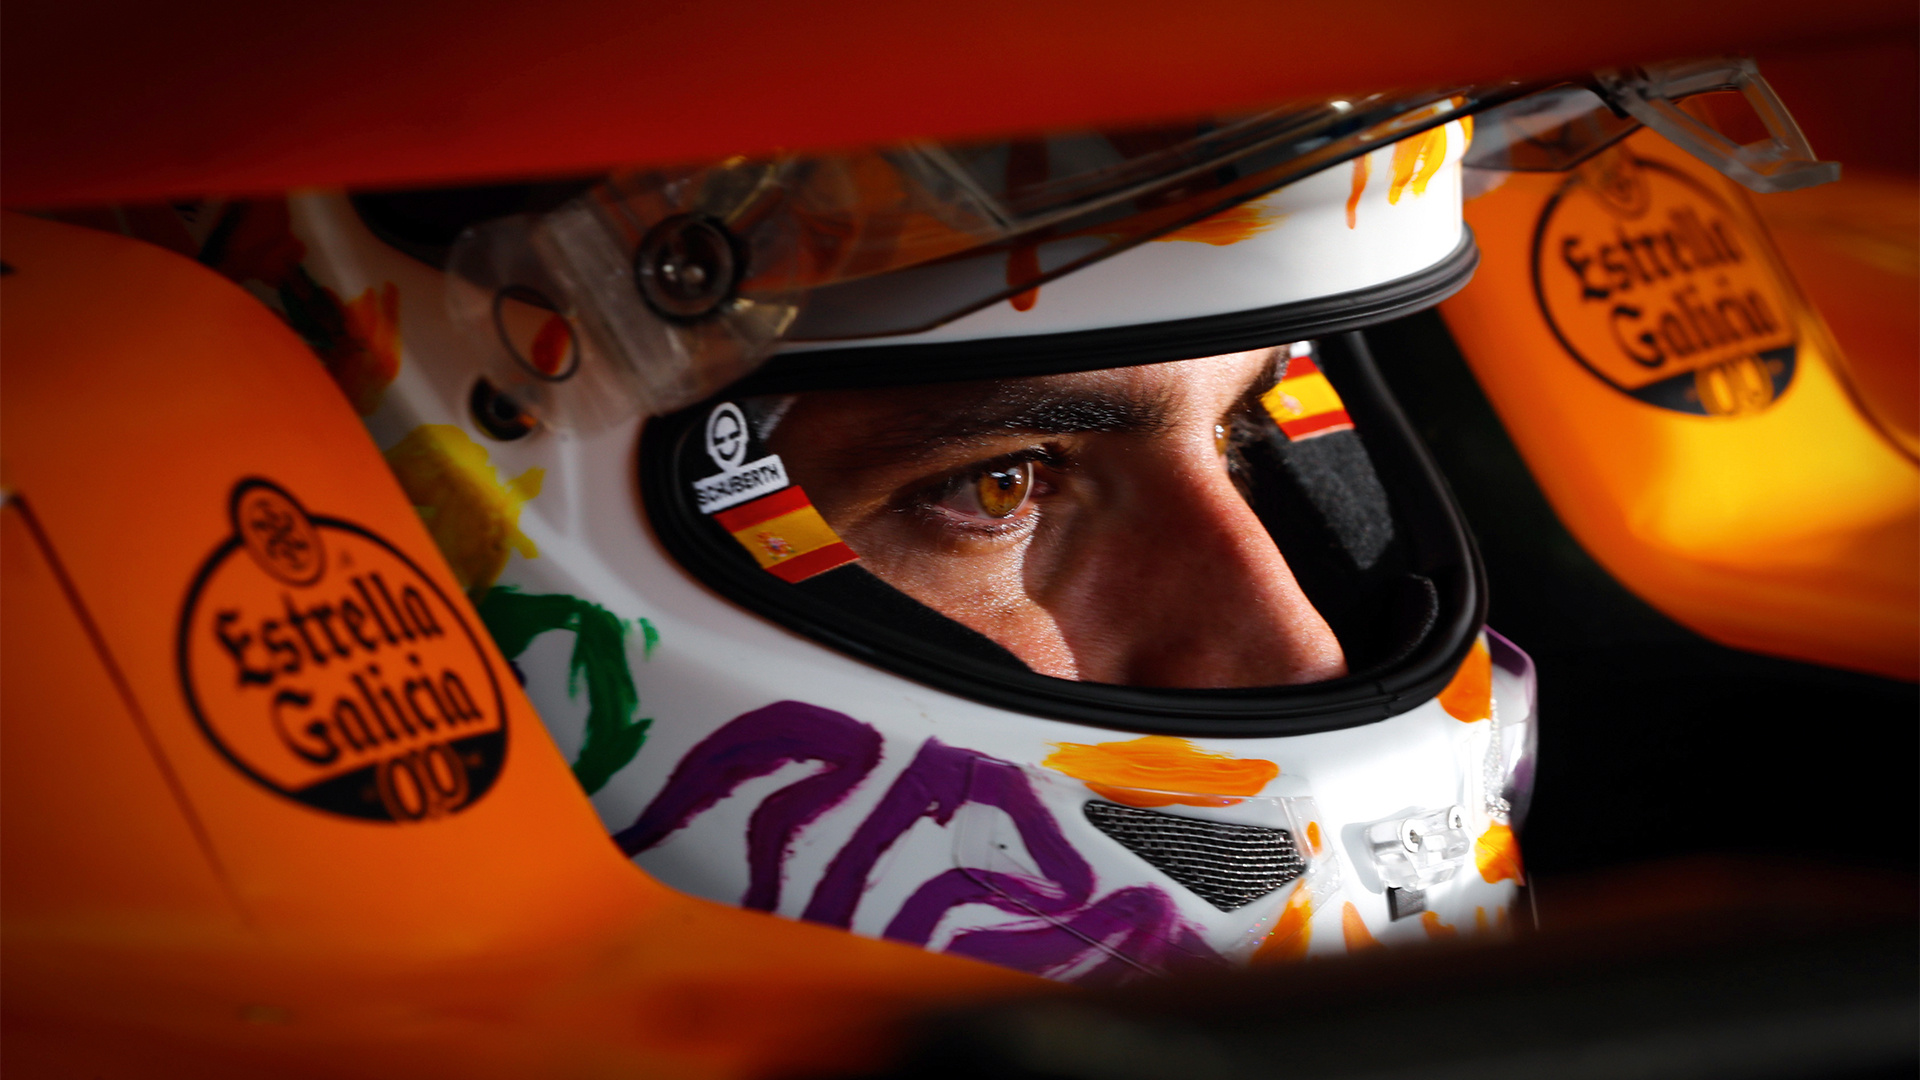 Carlos Sainz McLaren driver and new Ferrari F1 2021 recruit